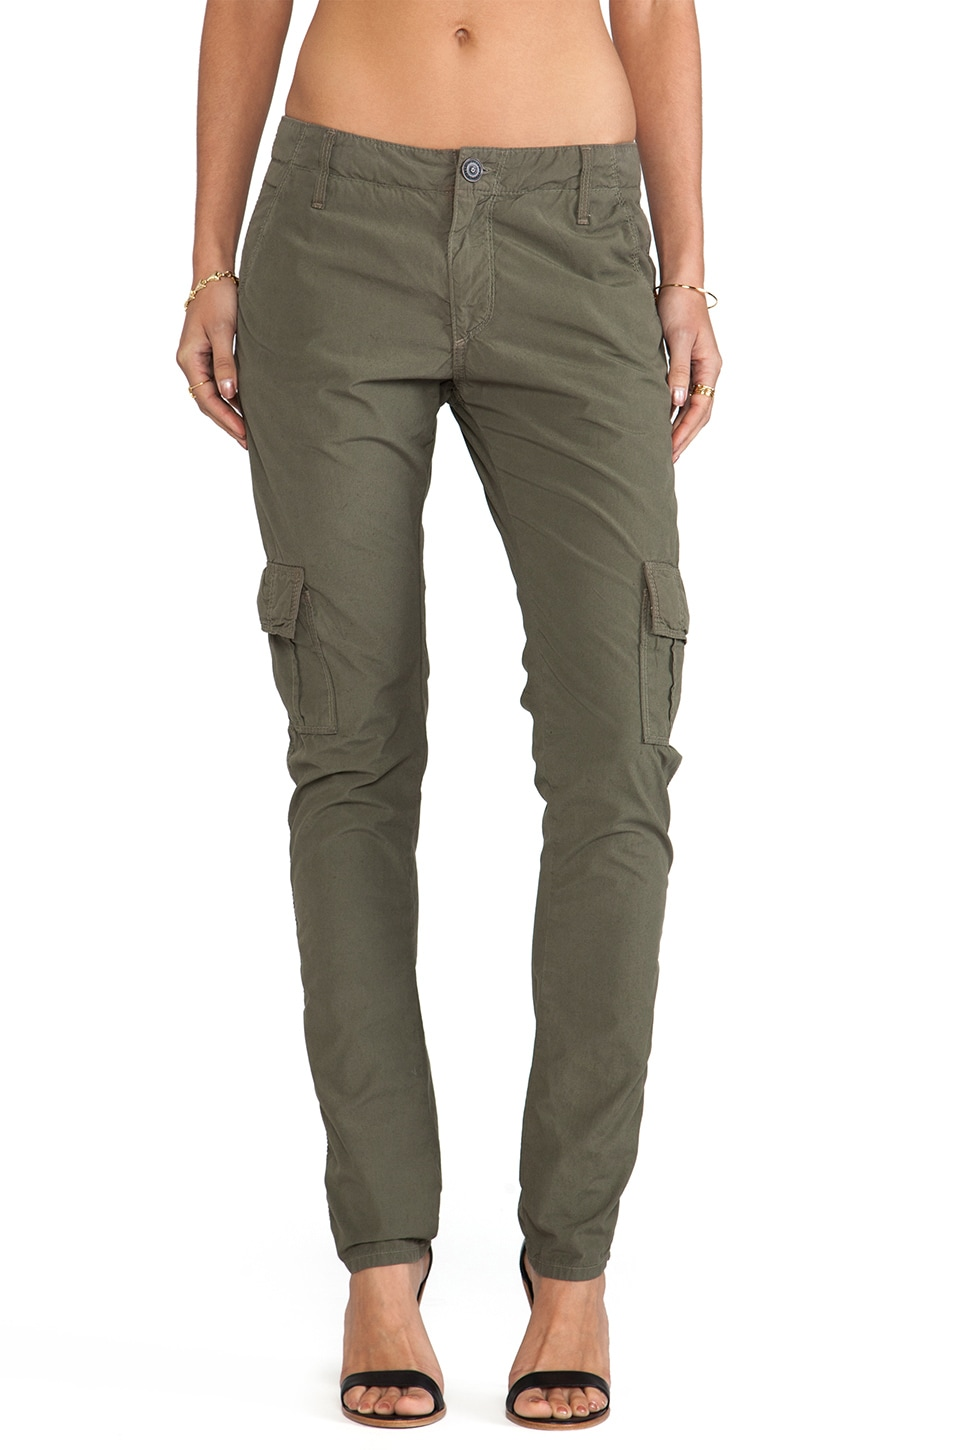 True Religion Celina Cargo in Dusty Olive